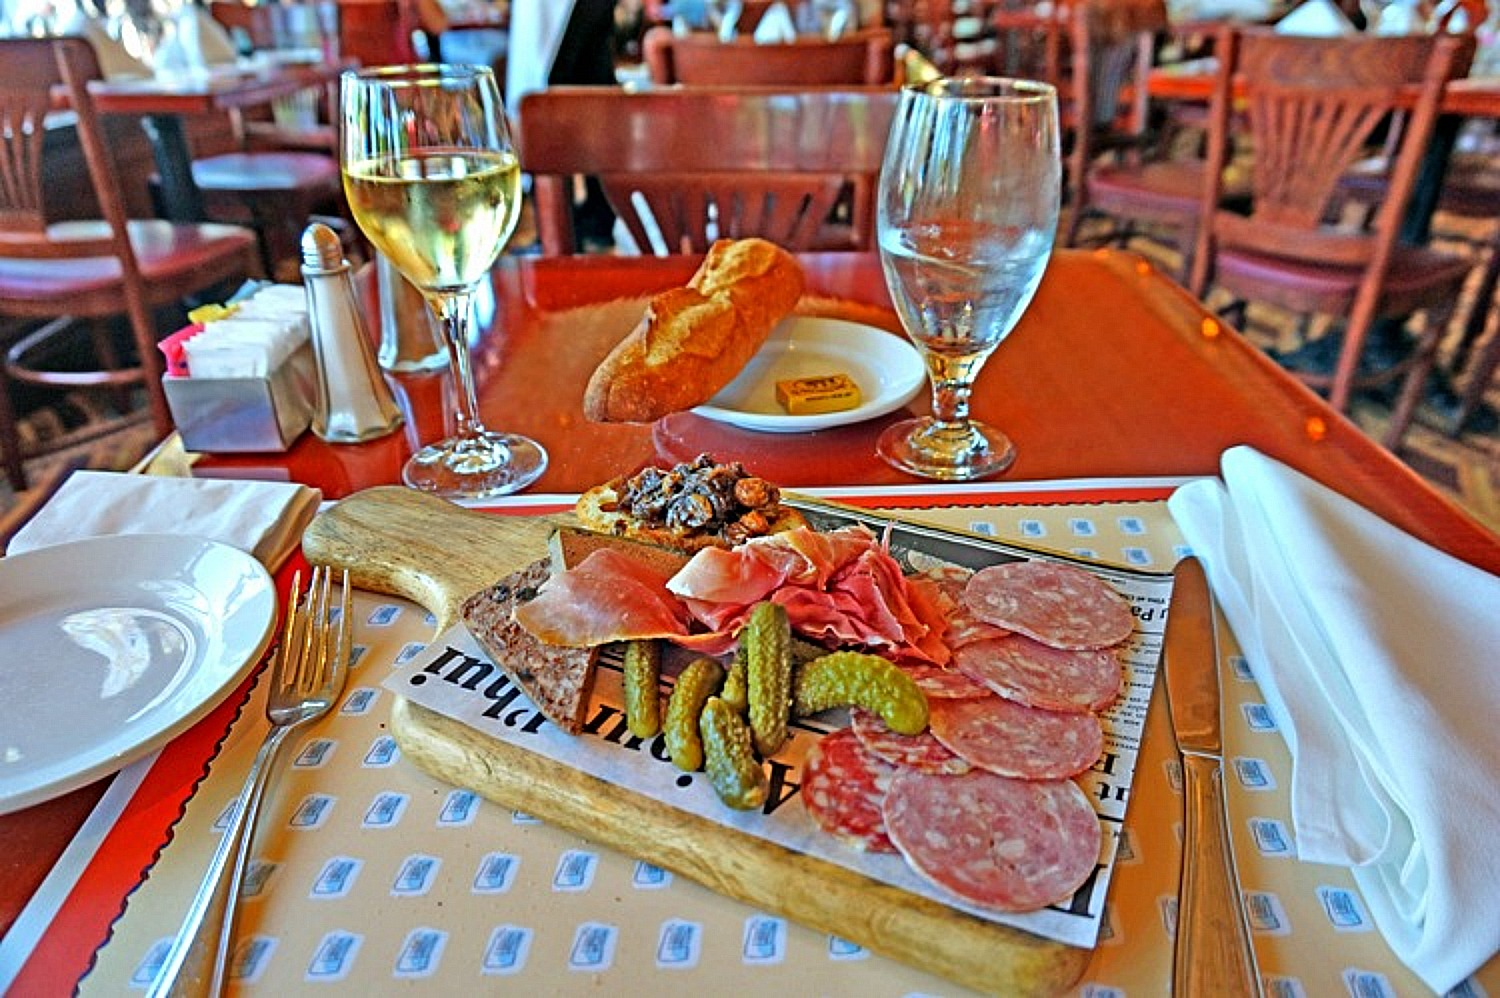 Reasons to visit America - antipasti plate.